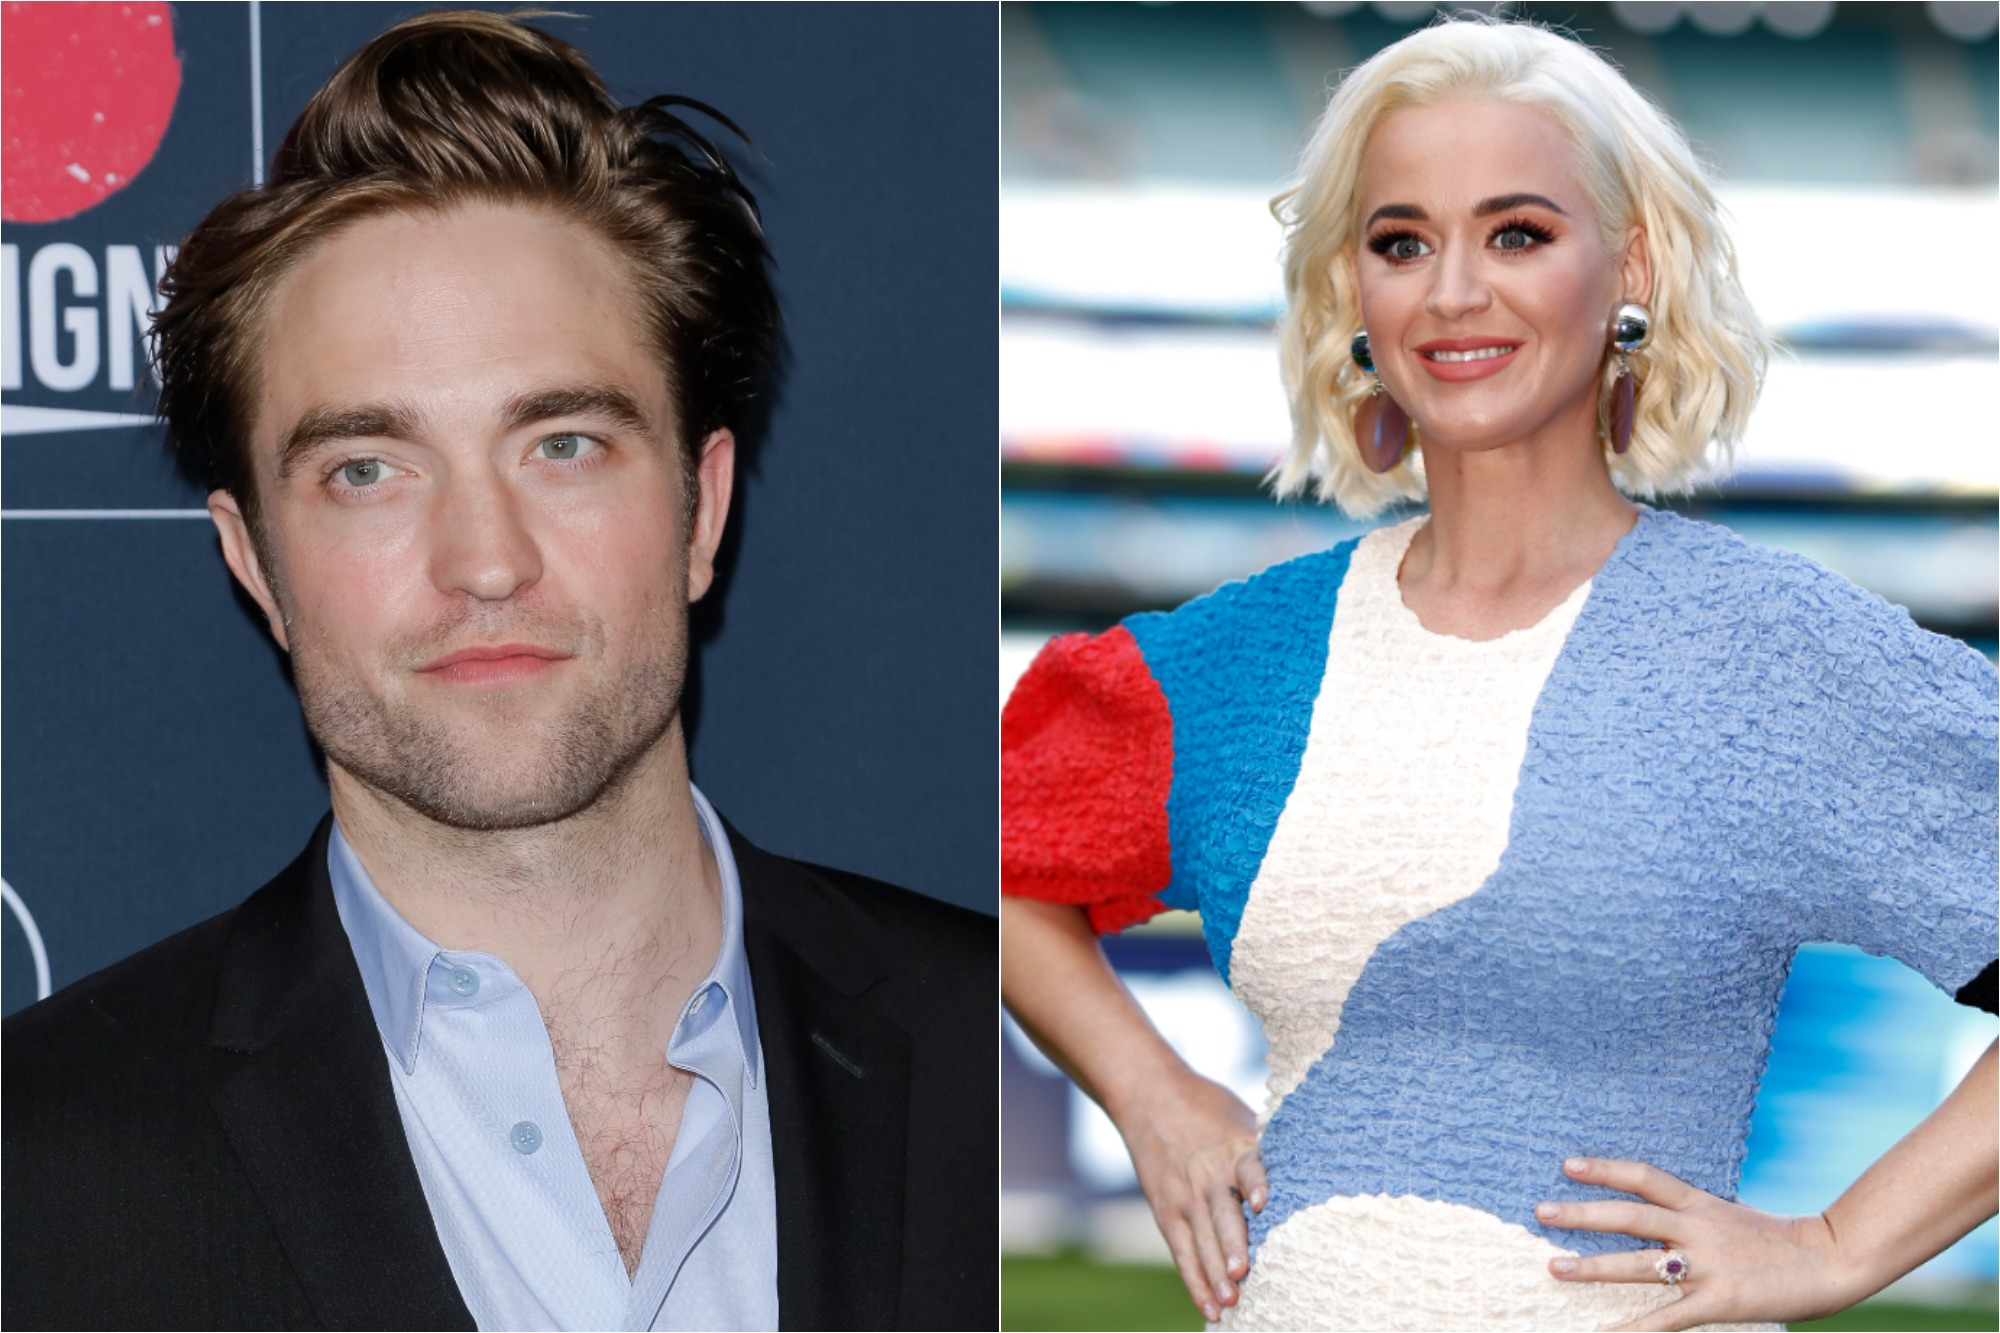 (L) Robert Pattinson at the Go Campaign's 13th Annual Go Gala at NeueHouse Hollywood on Nov. 16, 2019 / (R) Katy Perry at the 2020 ICC Women's T20 World Cup Media Opportunity at Melbourne Cricket Ground on March 07, 2020.